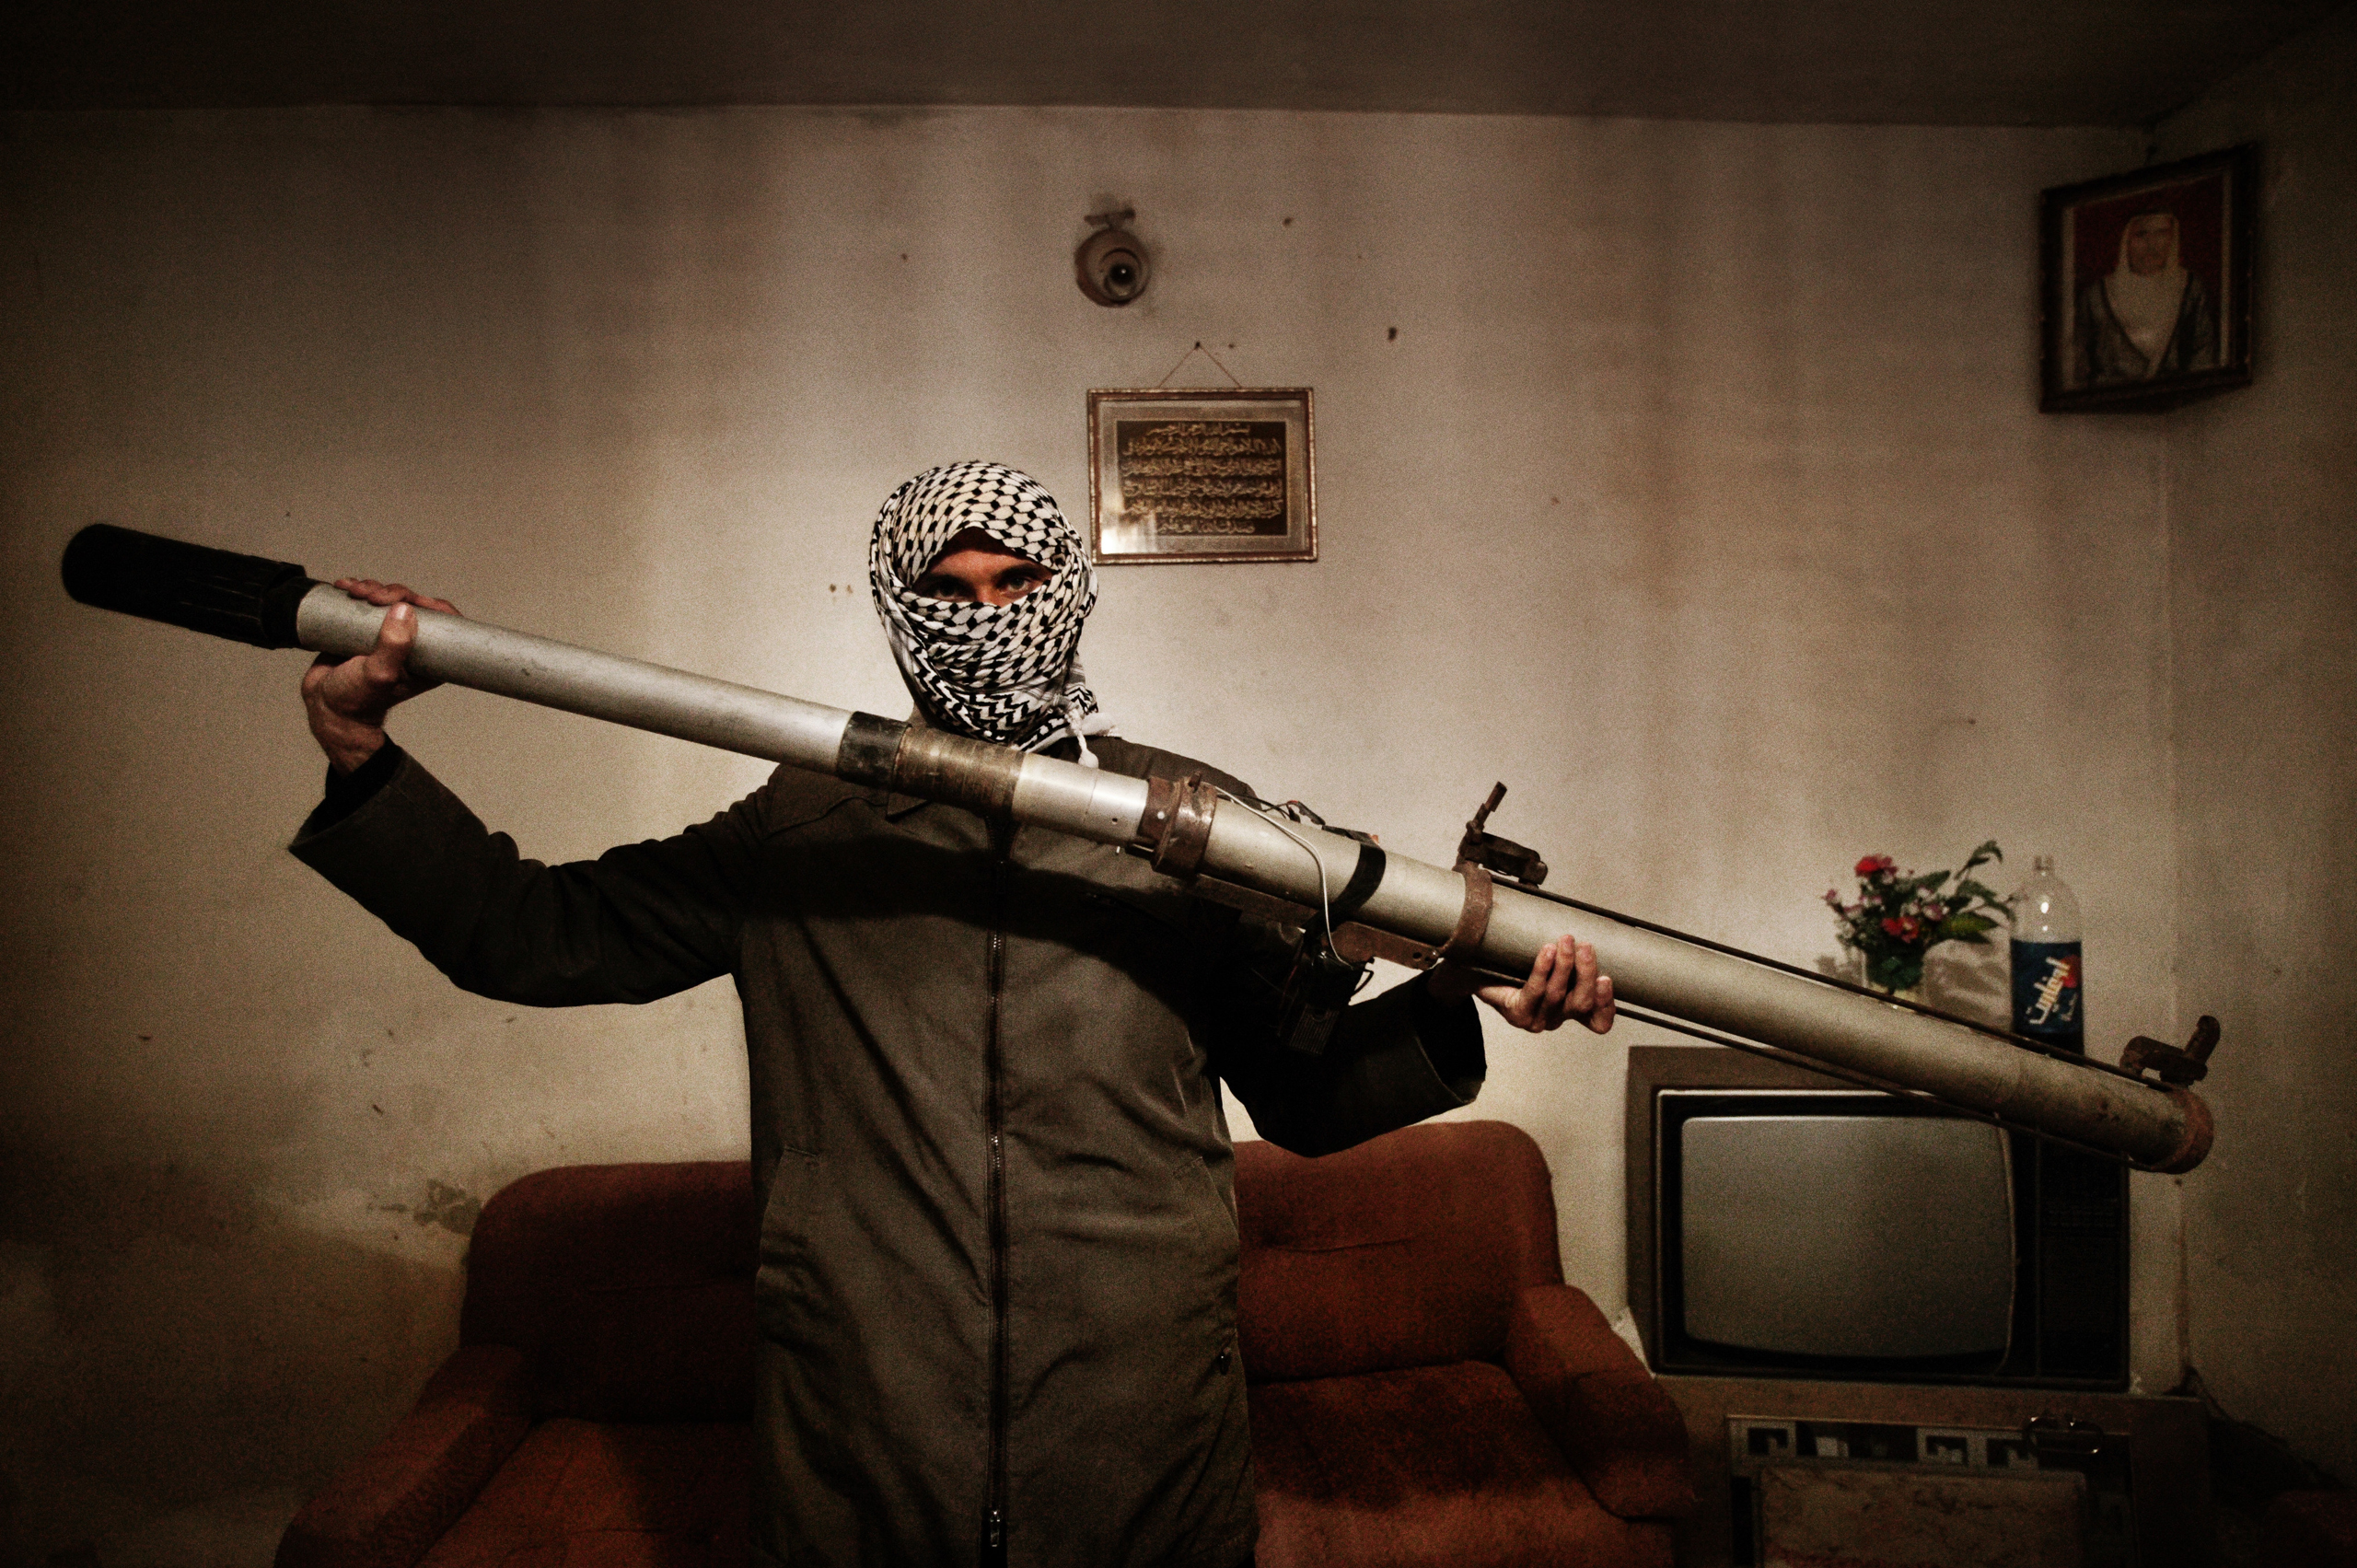 A member of a resistance network operating against U.S. forces in Iraq holds a modified launcher for surface-to-air missiles, Baghdad, Iraq, Dec. 4, 2003.